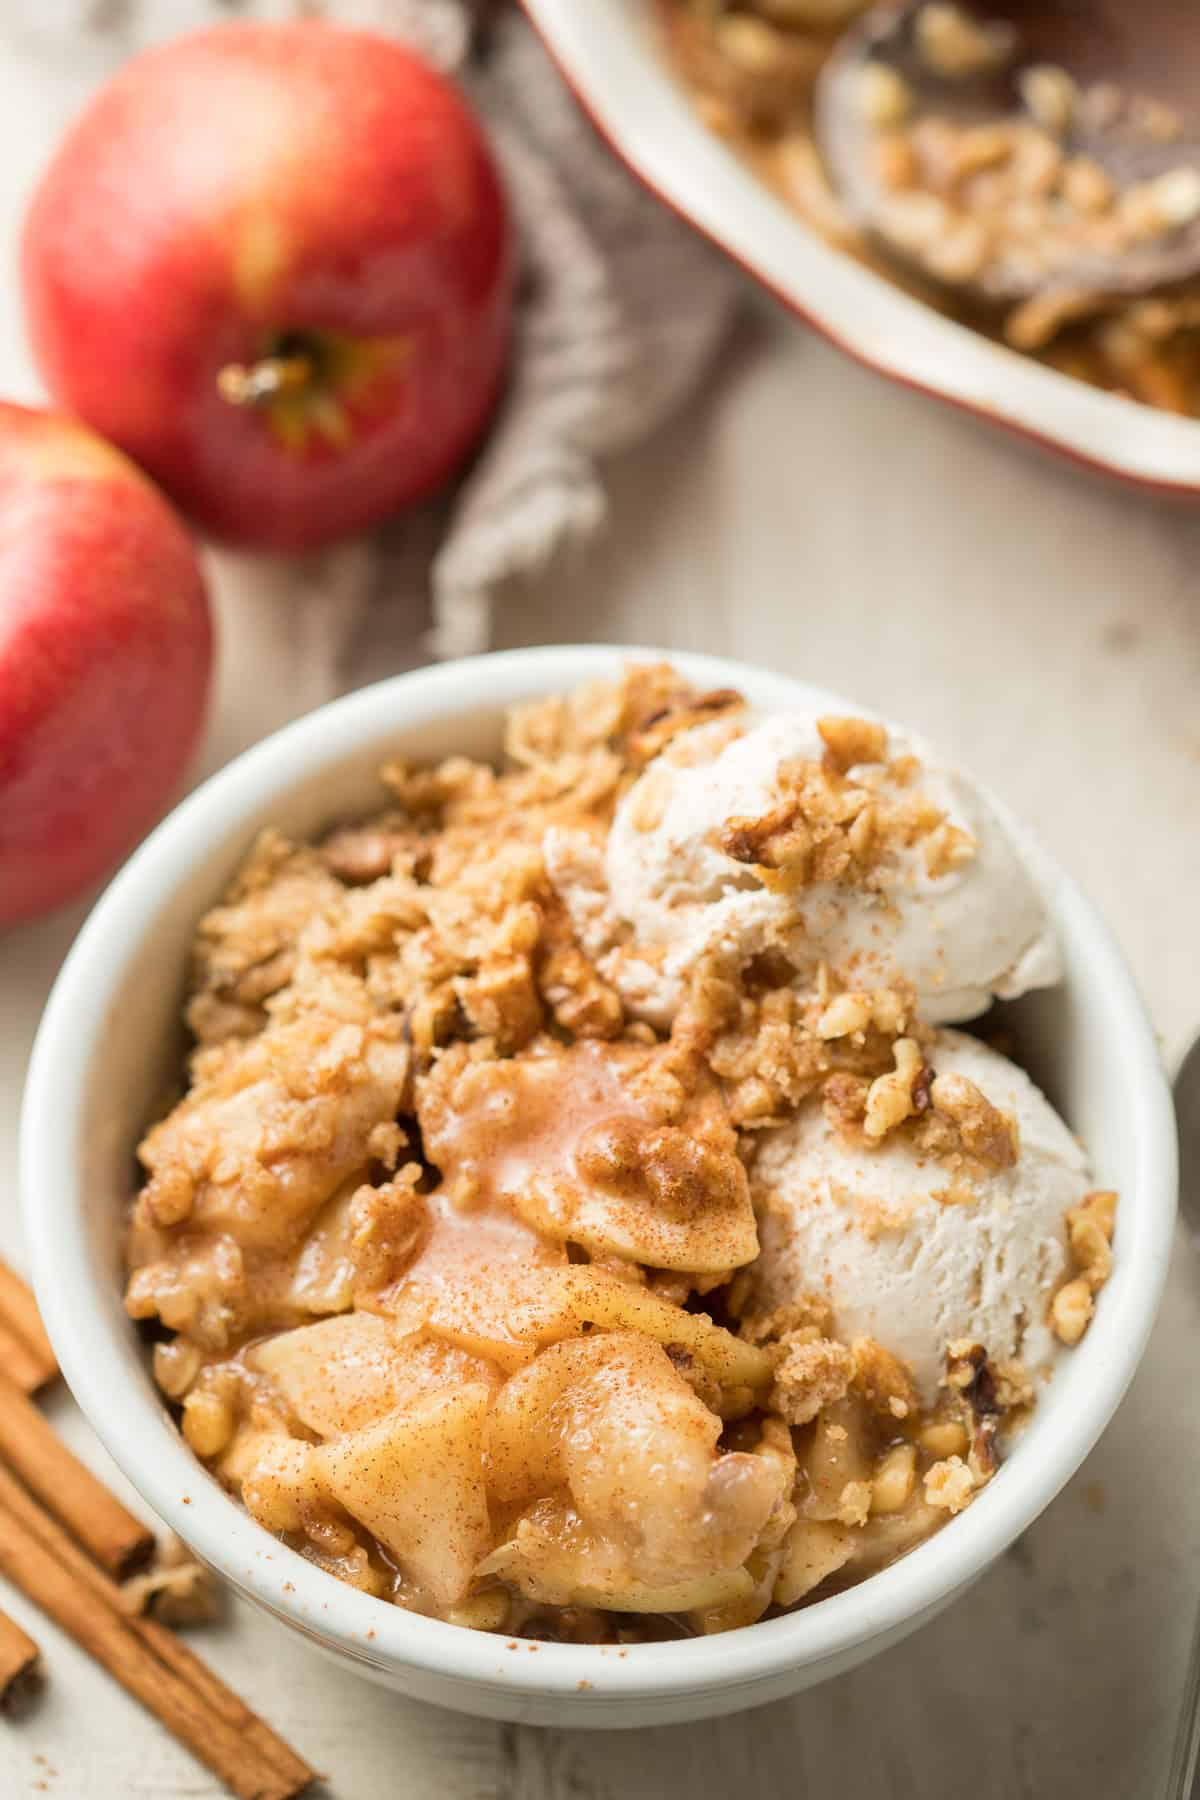 Bowl of Vegan Apple Crisp and Ice Cream with Apples and Baking Dish in the Background